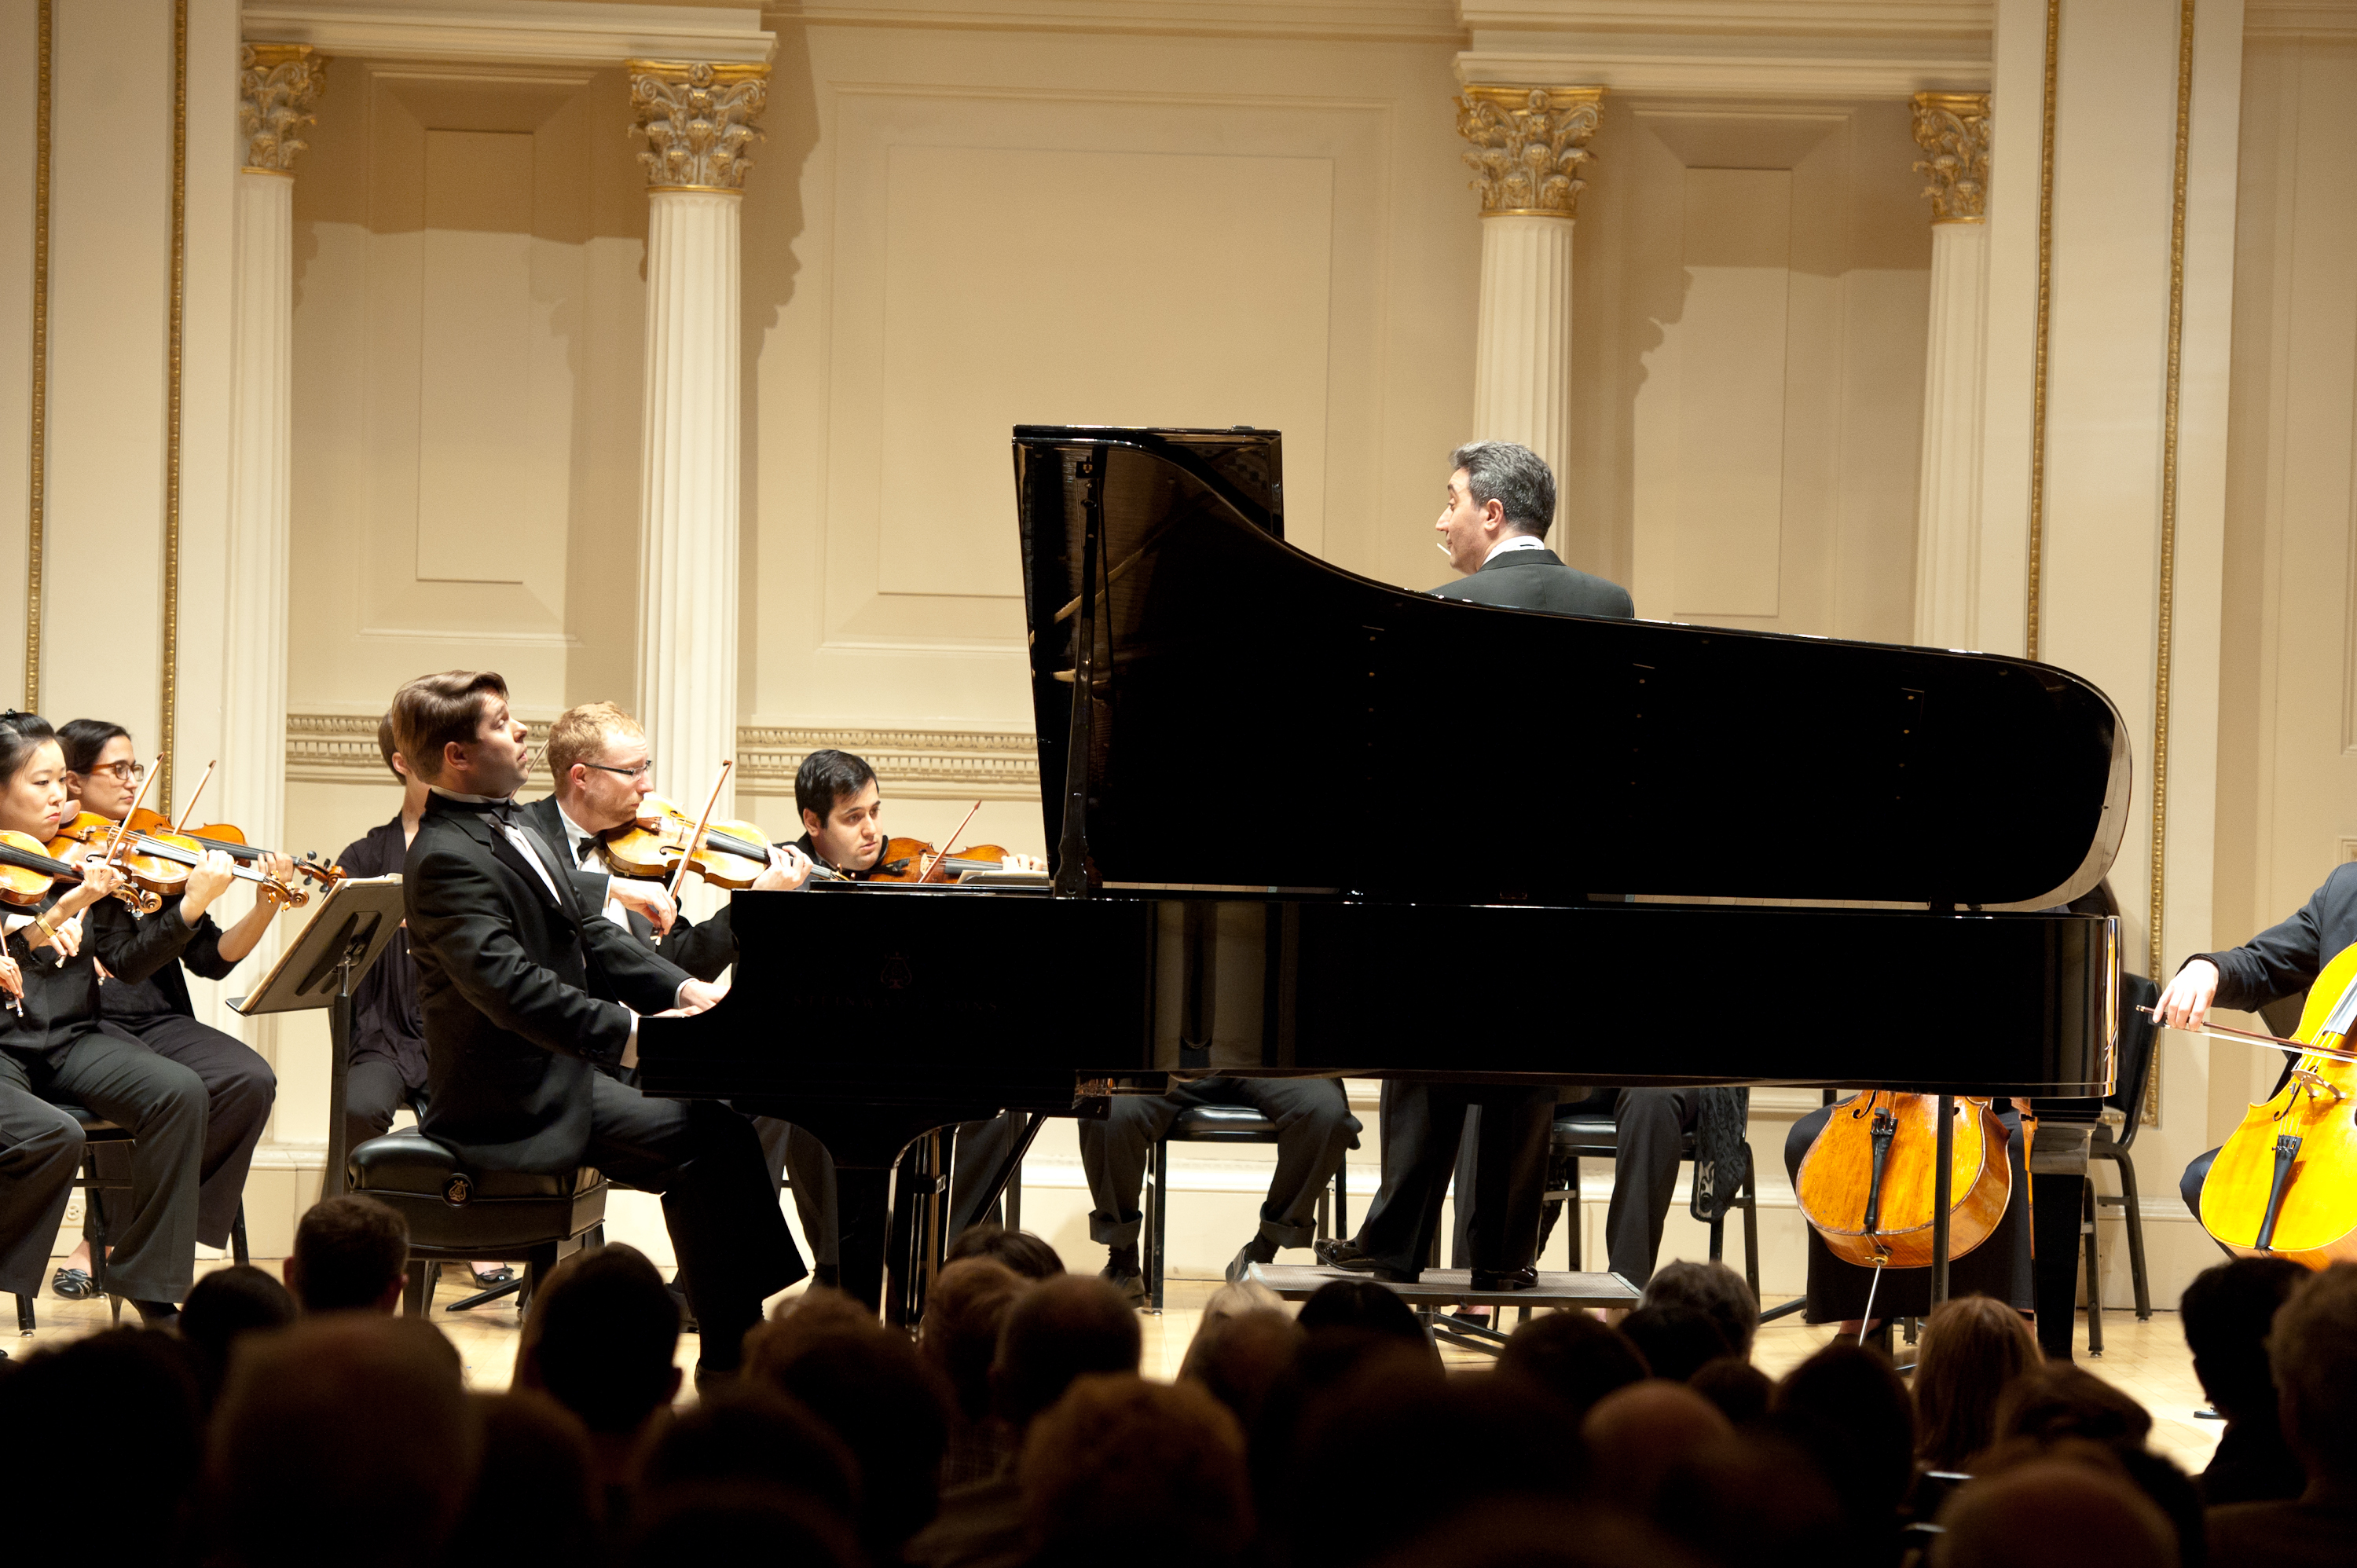 Chamber orchestra of new york victor cayres de mendonca for Chambre orchestra